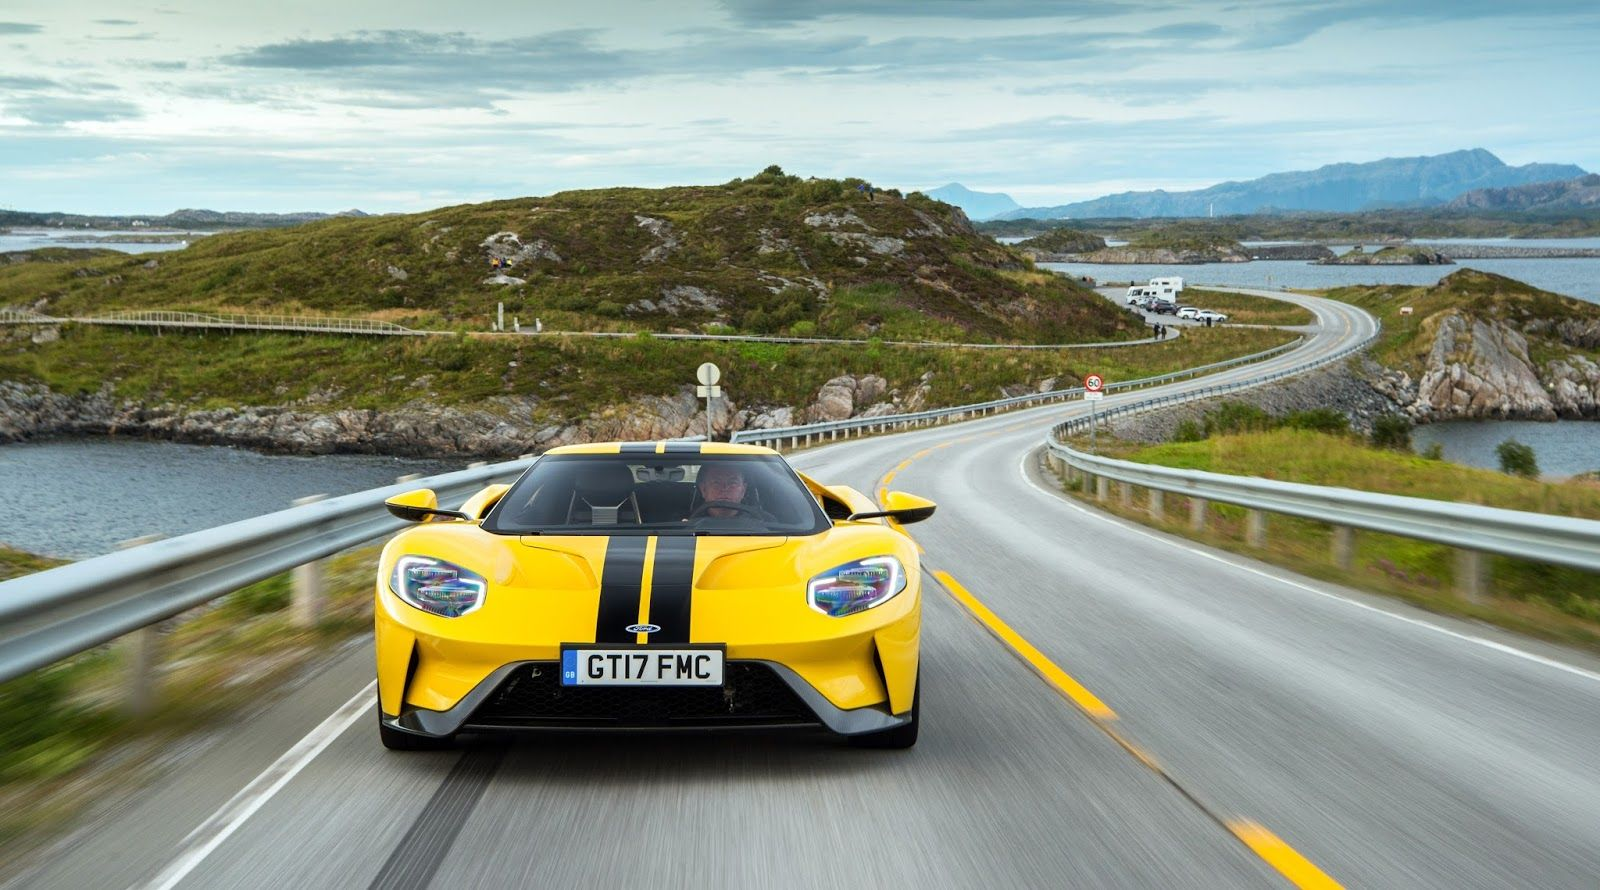 Watch The Ford Gt Head Out For A Drive On The Atlantic Ocean Road Fordgt Supercar Roadtrip